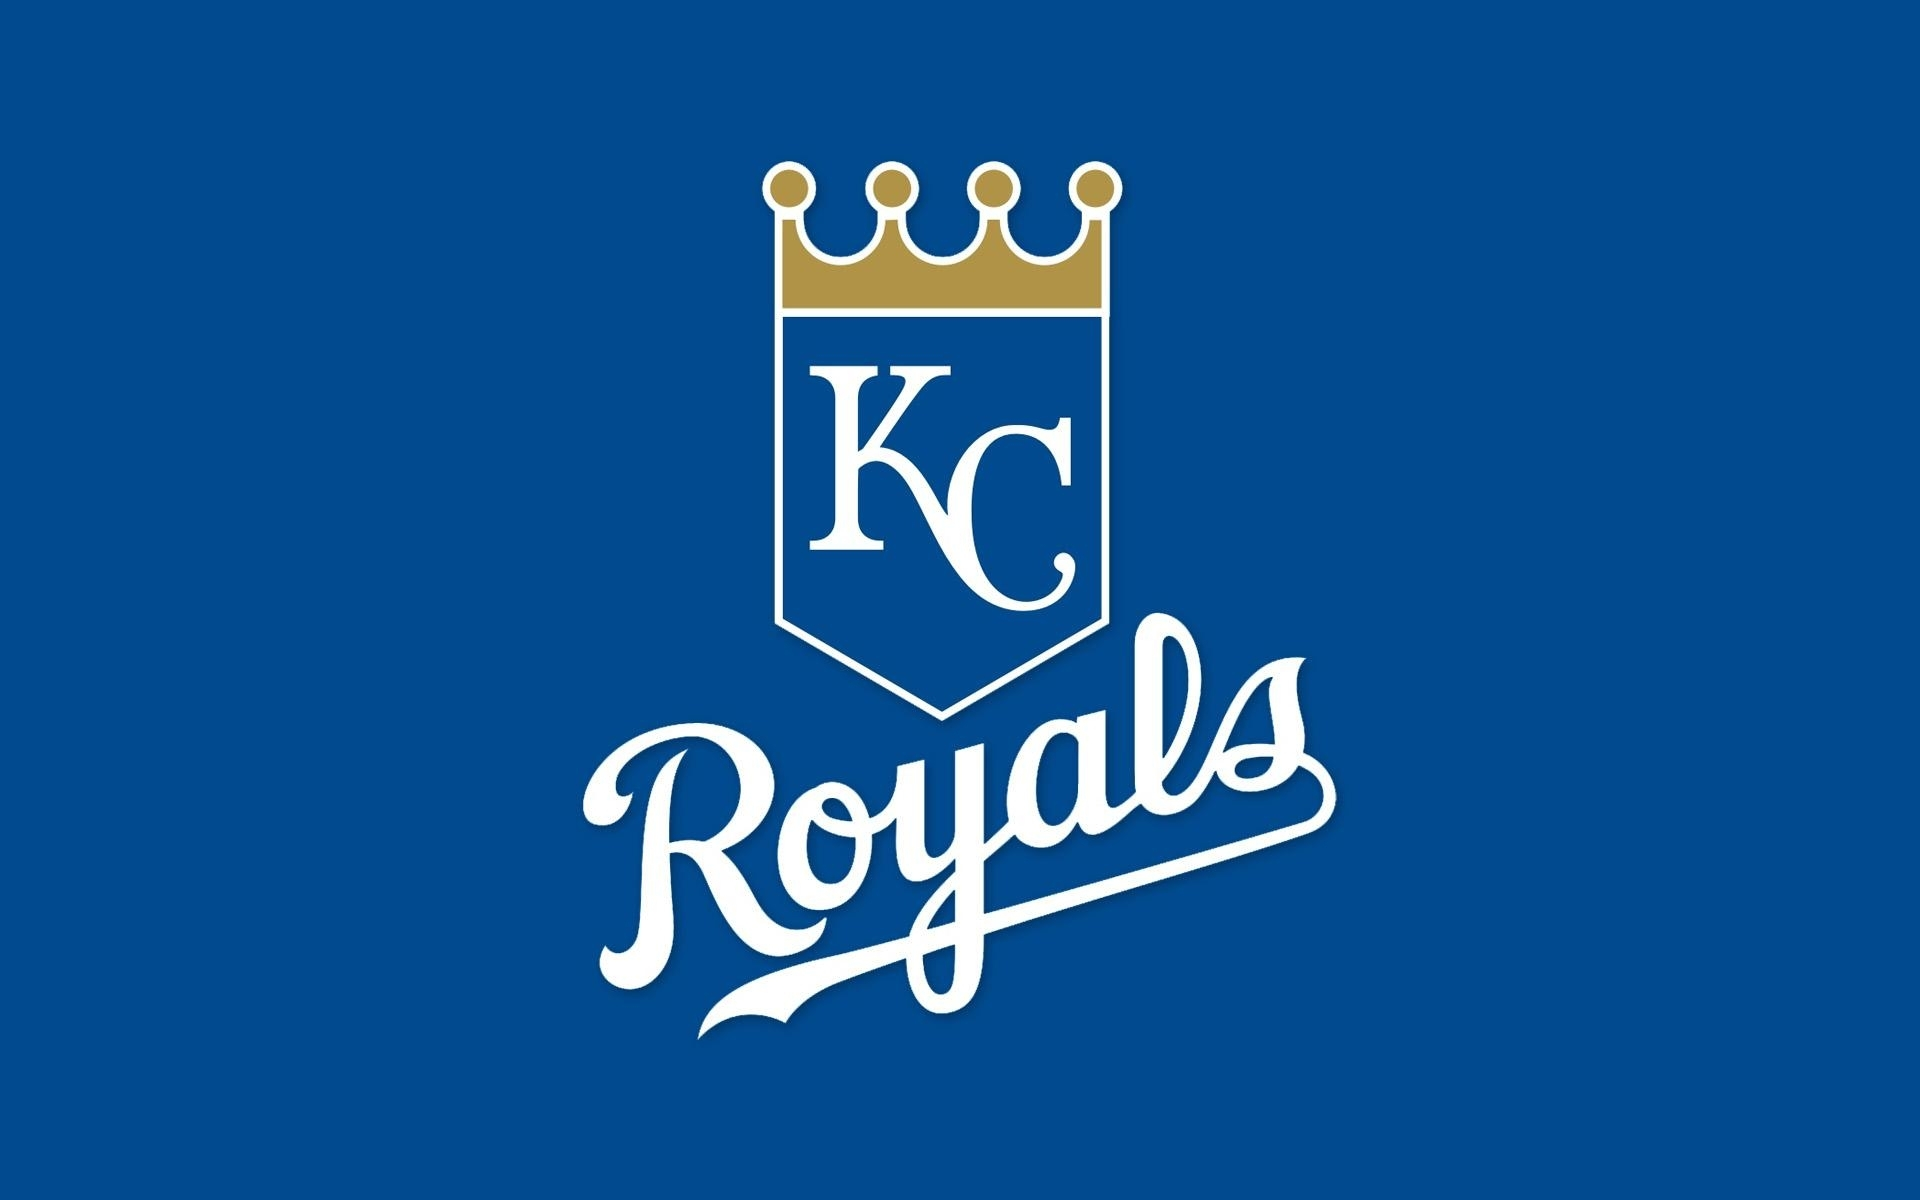 kansas city royals wallpapers & browser themes to get pumped for